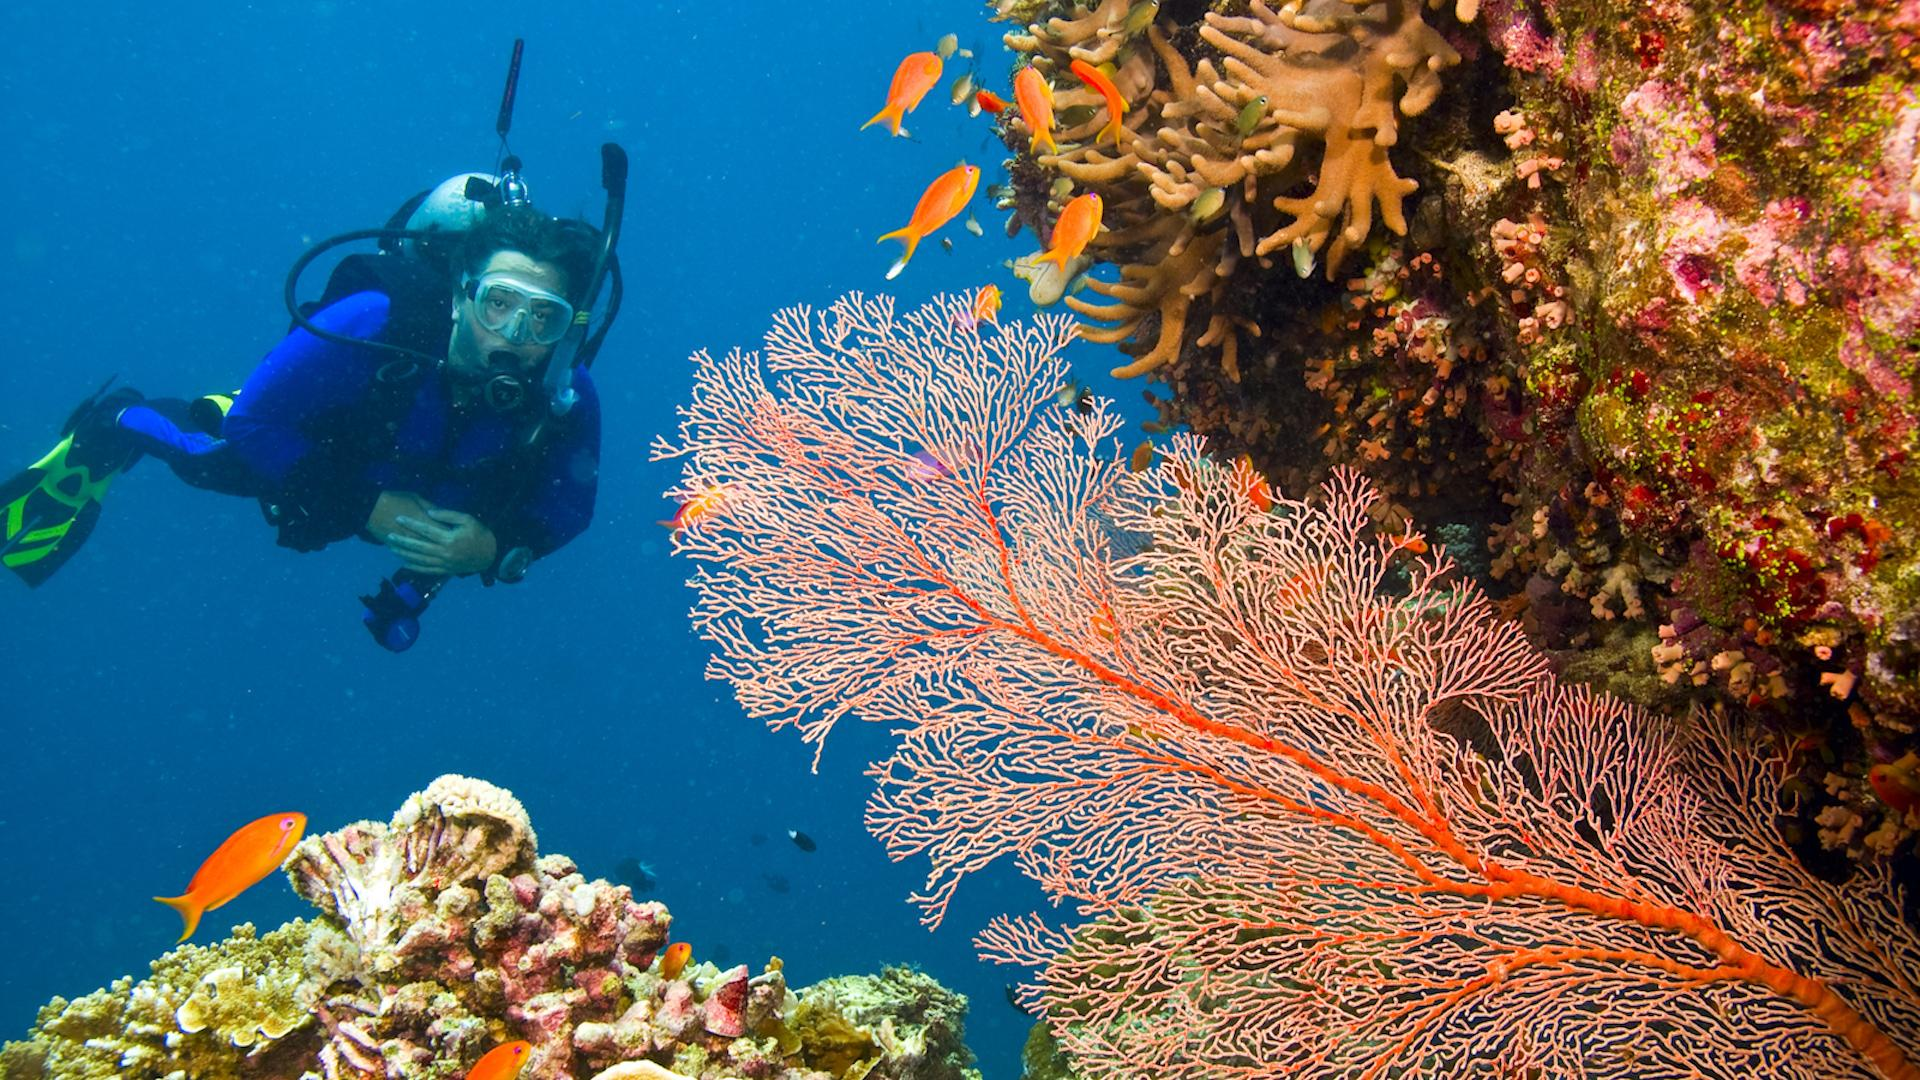 How to have a sustainable visit to the Great Barrier Reef